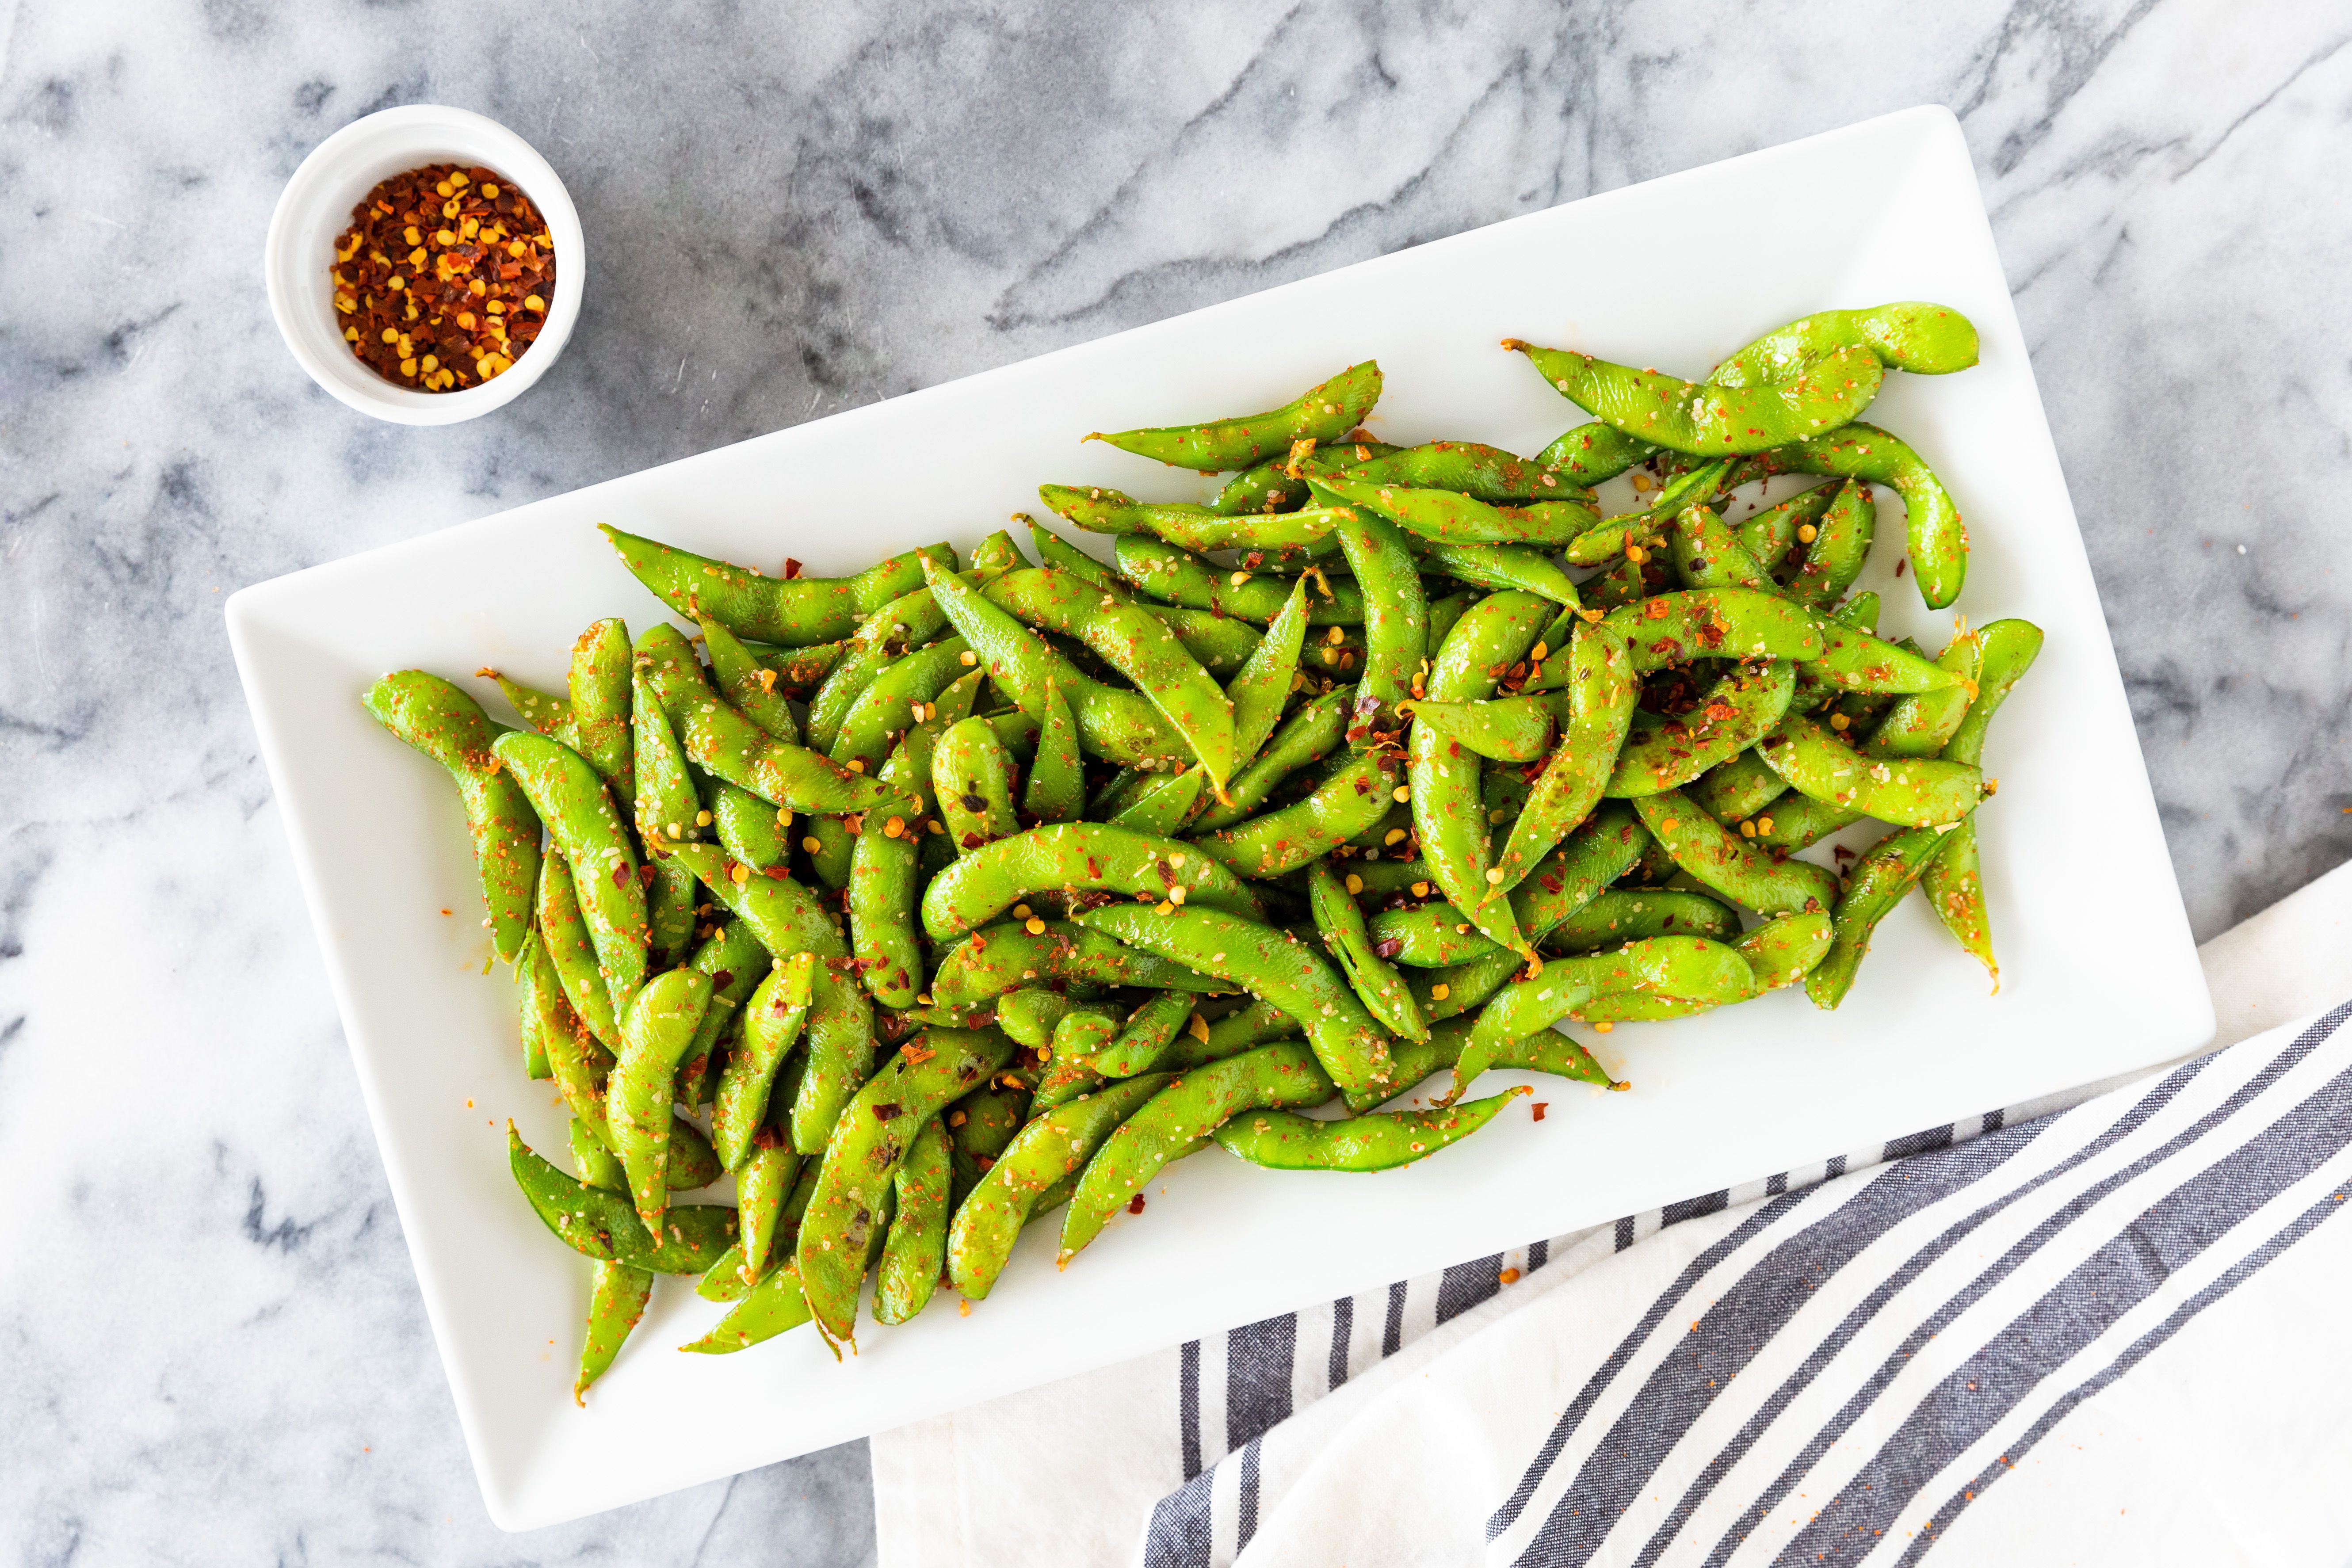 Spicy Edamame Soy Beans Recipe Appetizers Healthy